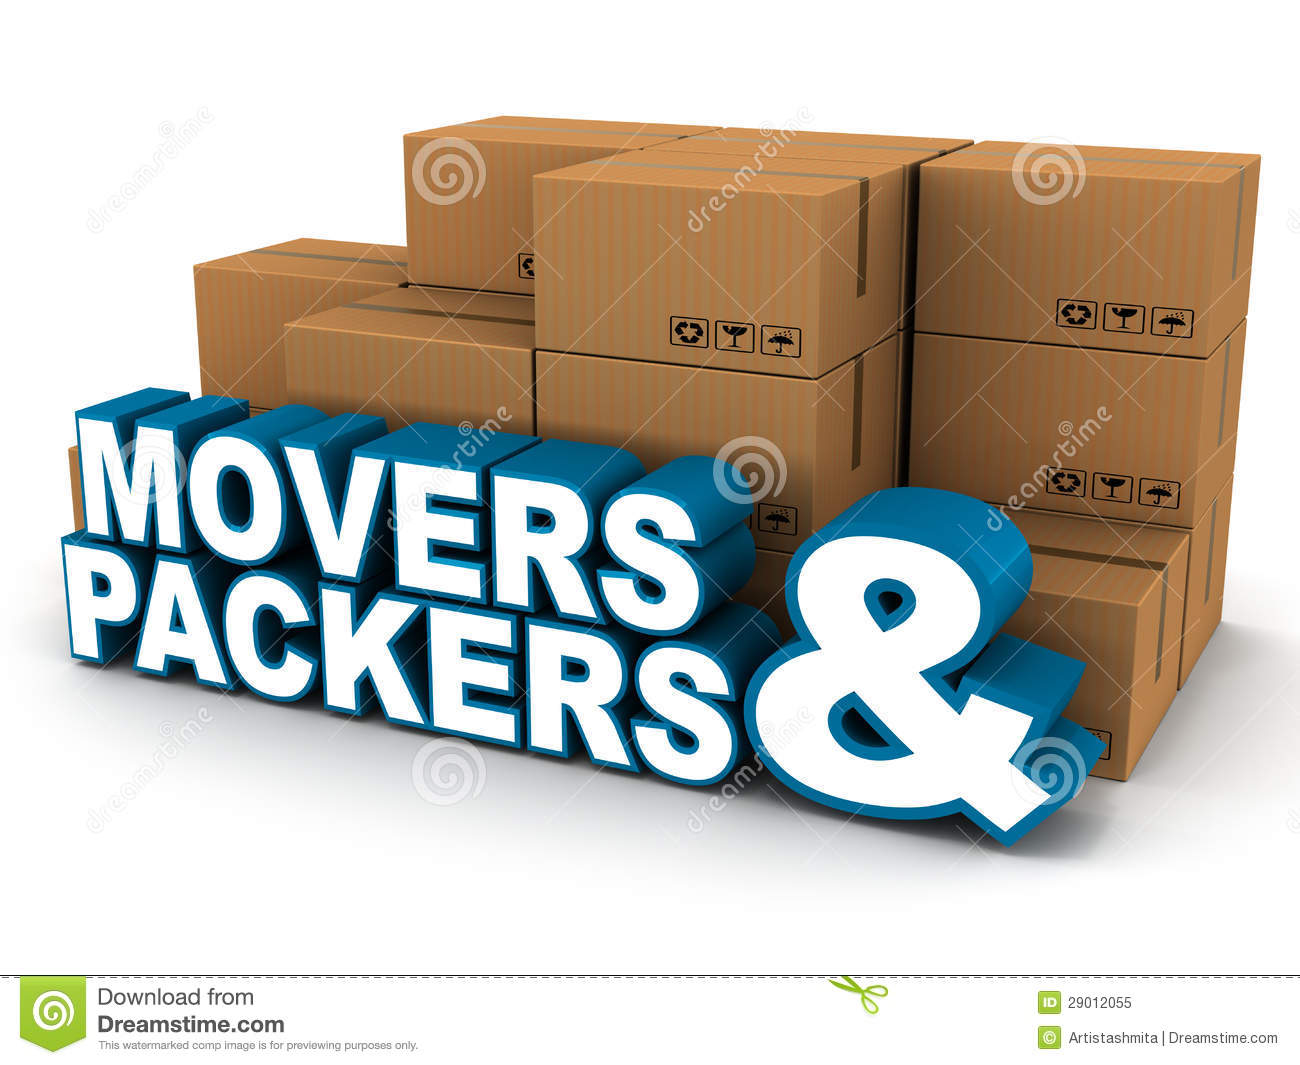 Movers Packers Royalty Free Stock Photo Image 29012055